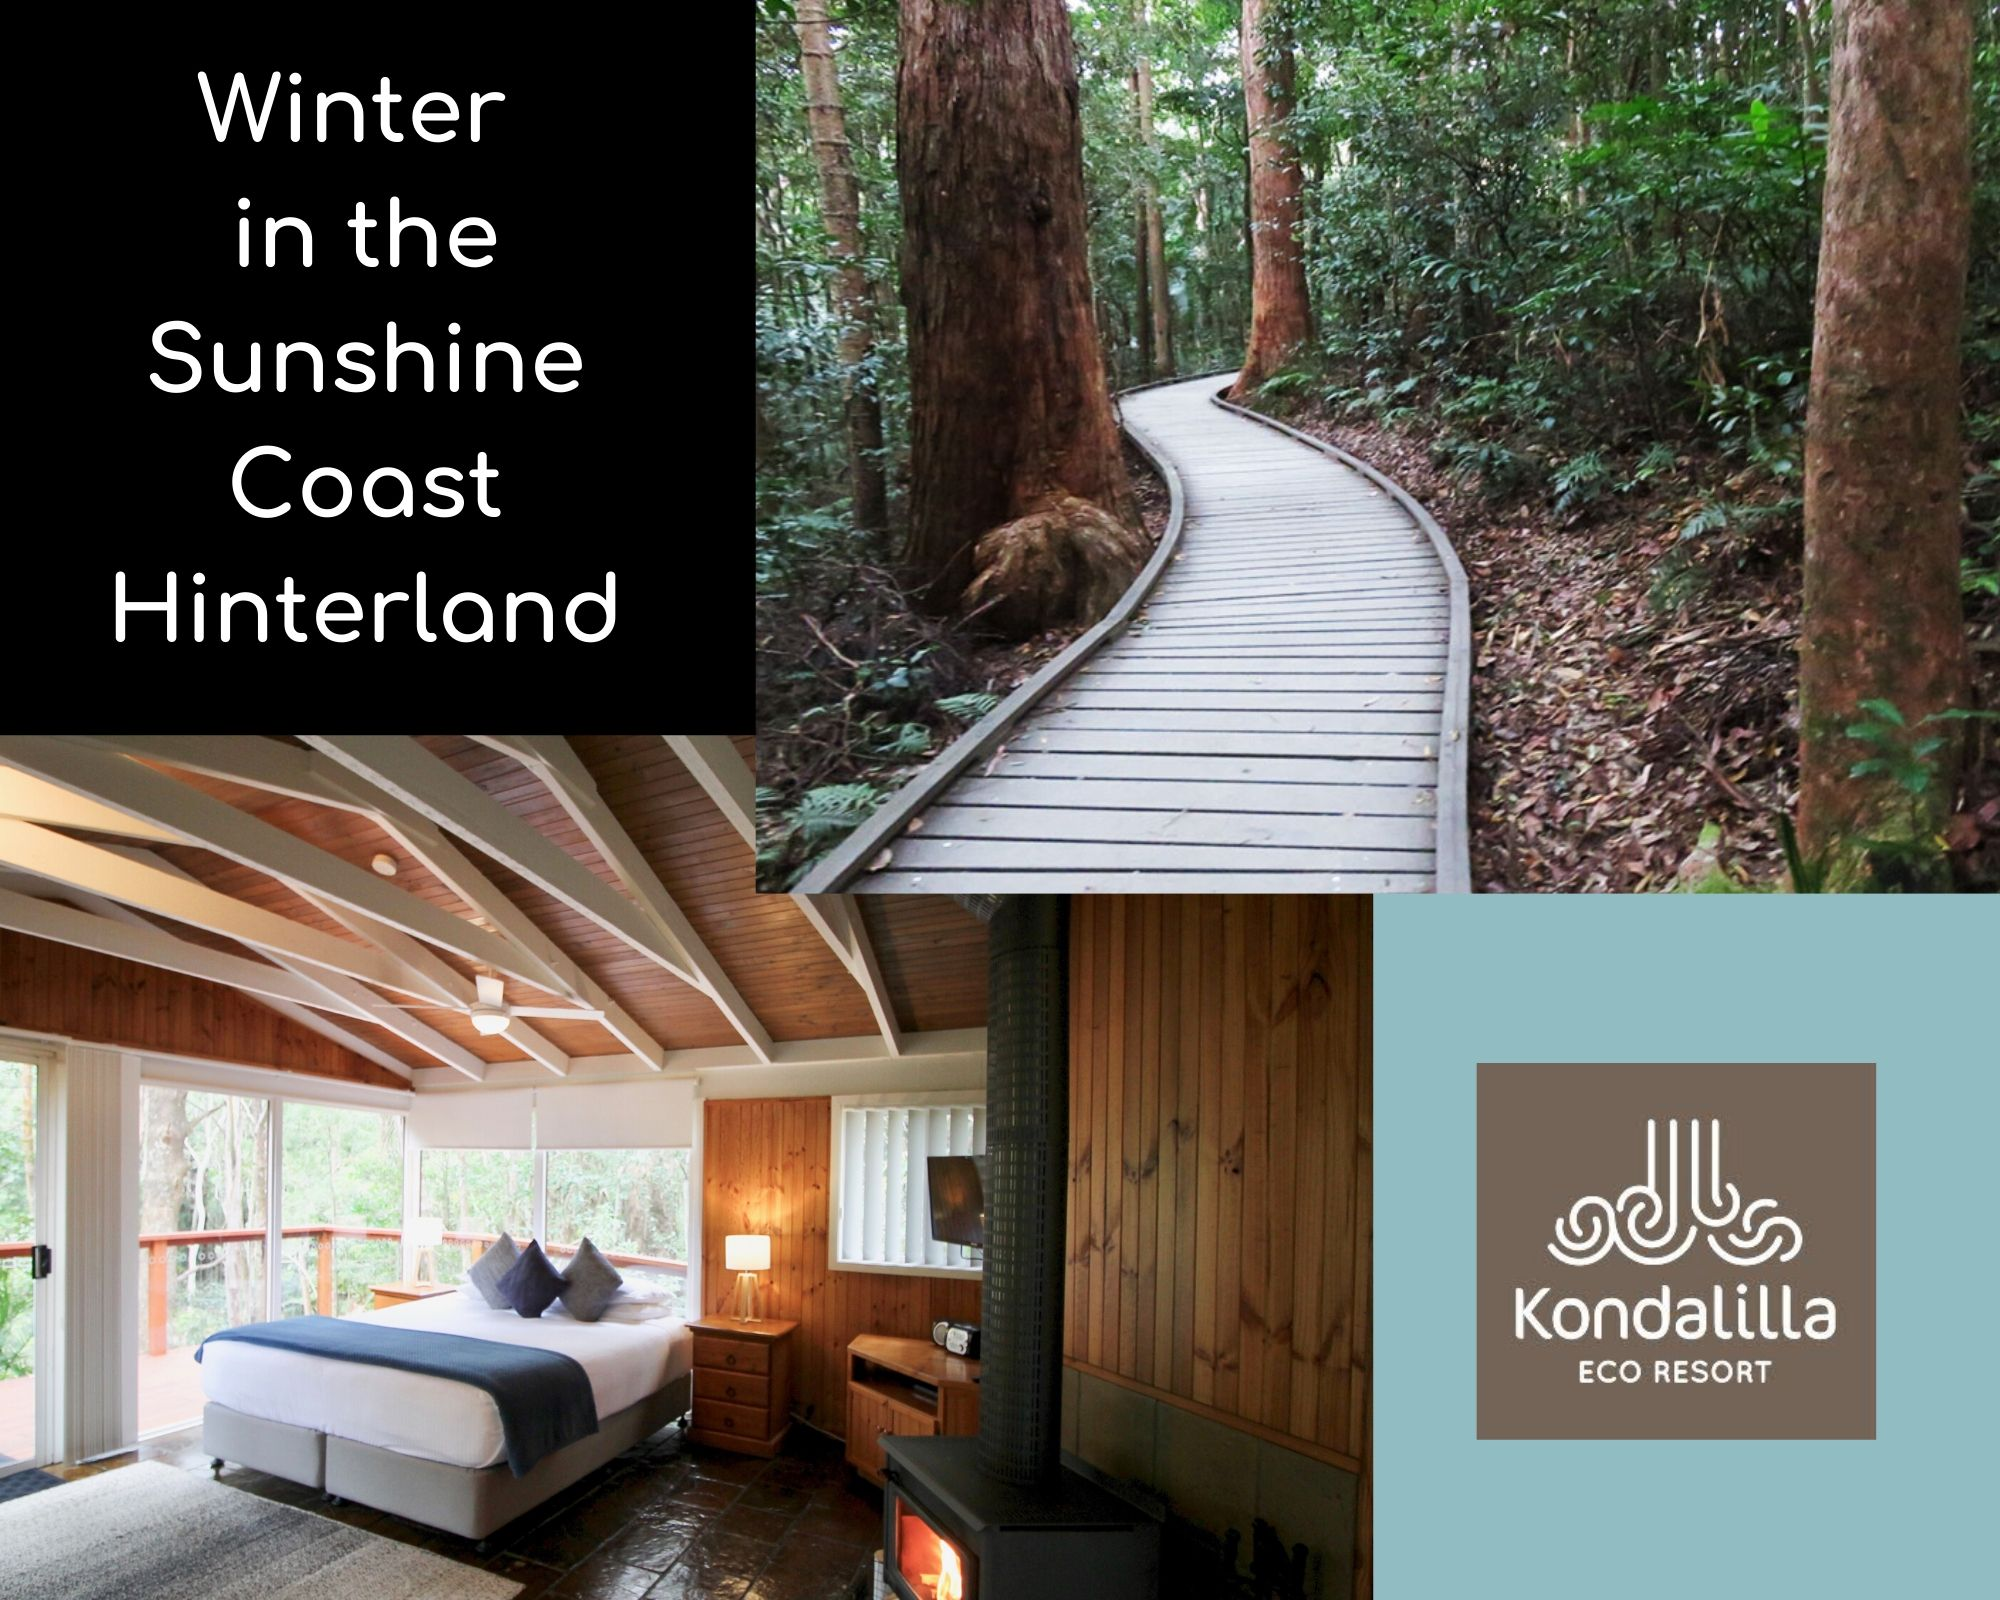 Experience Winter in the Hinterland